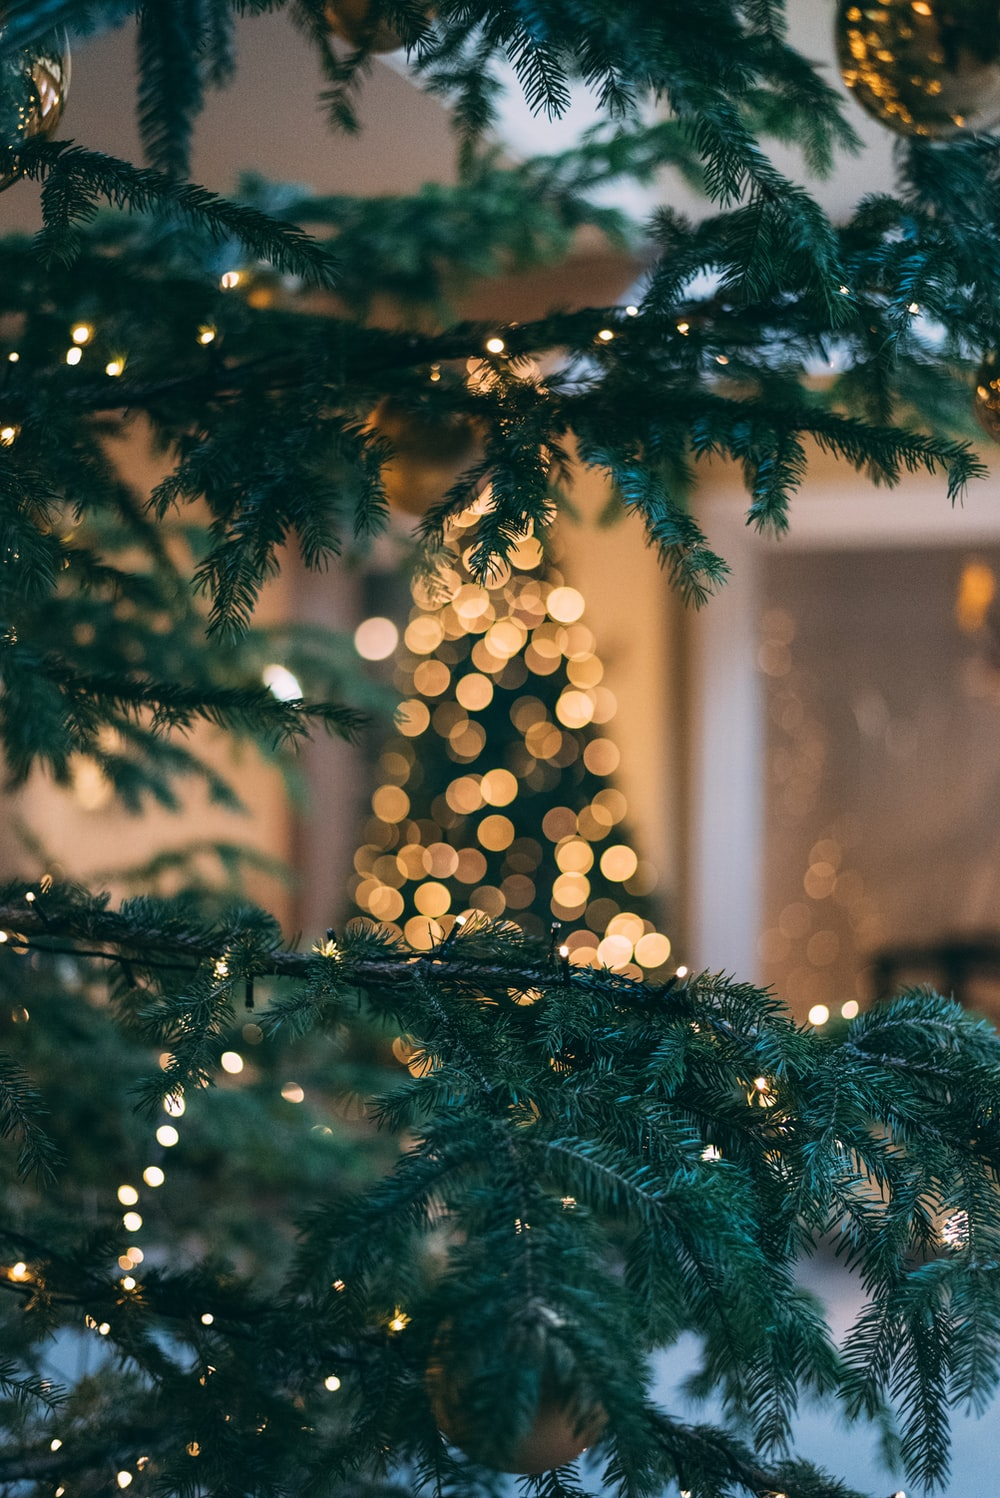 Christmas Pic.Best 500 Xmas Pictures Download Free Images On Unsplash